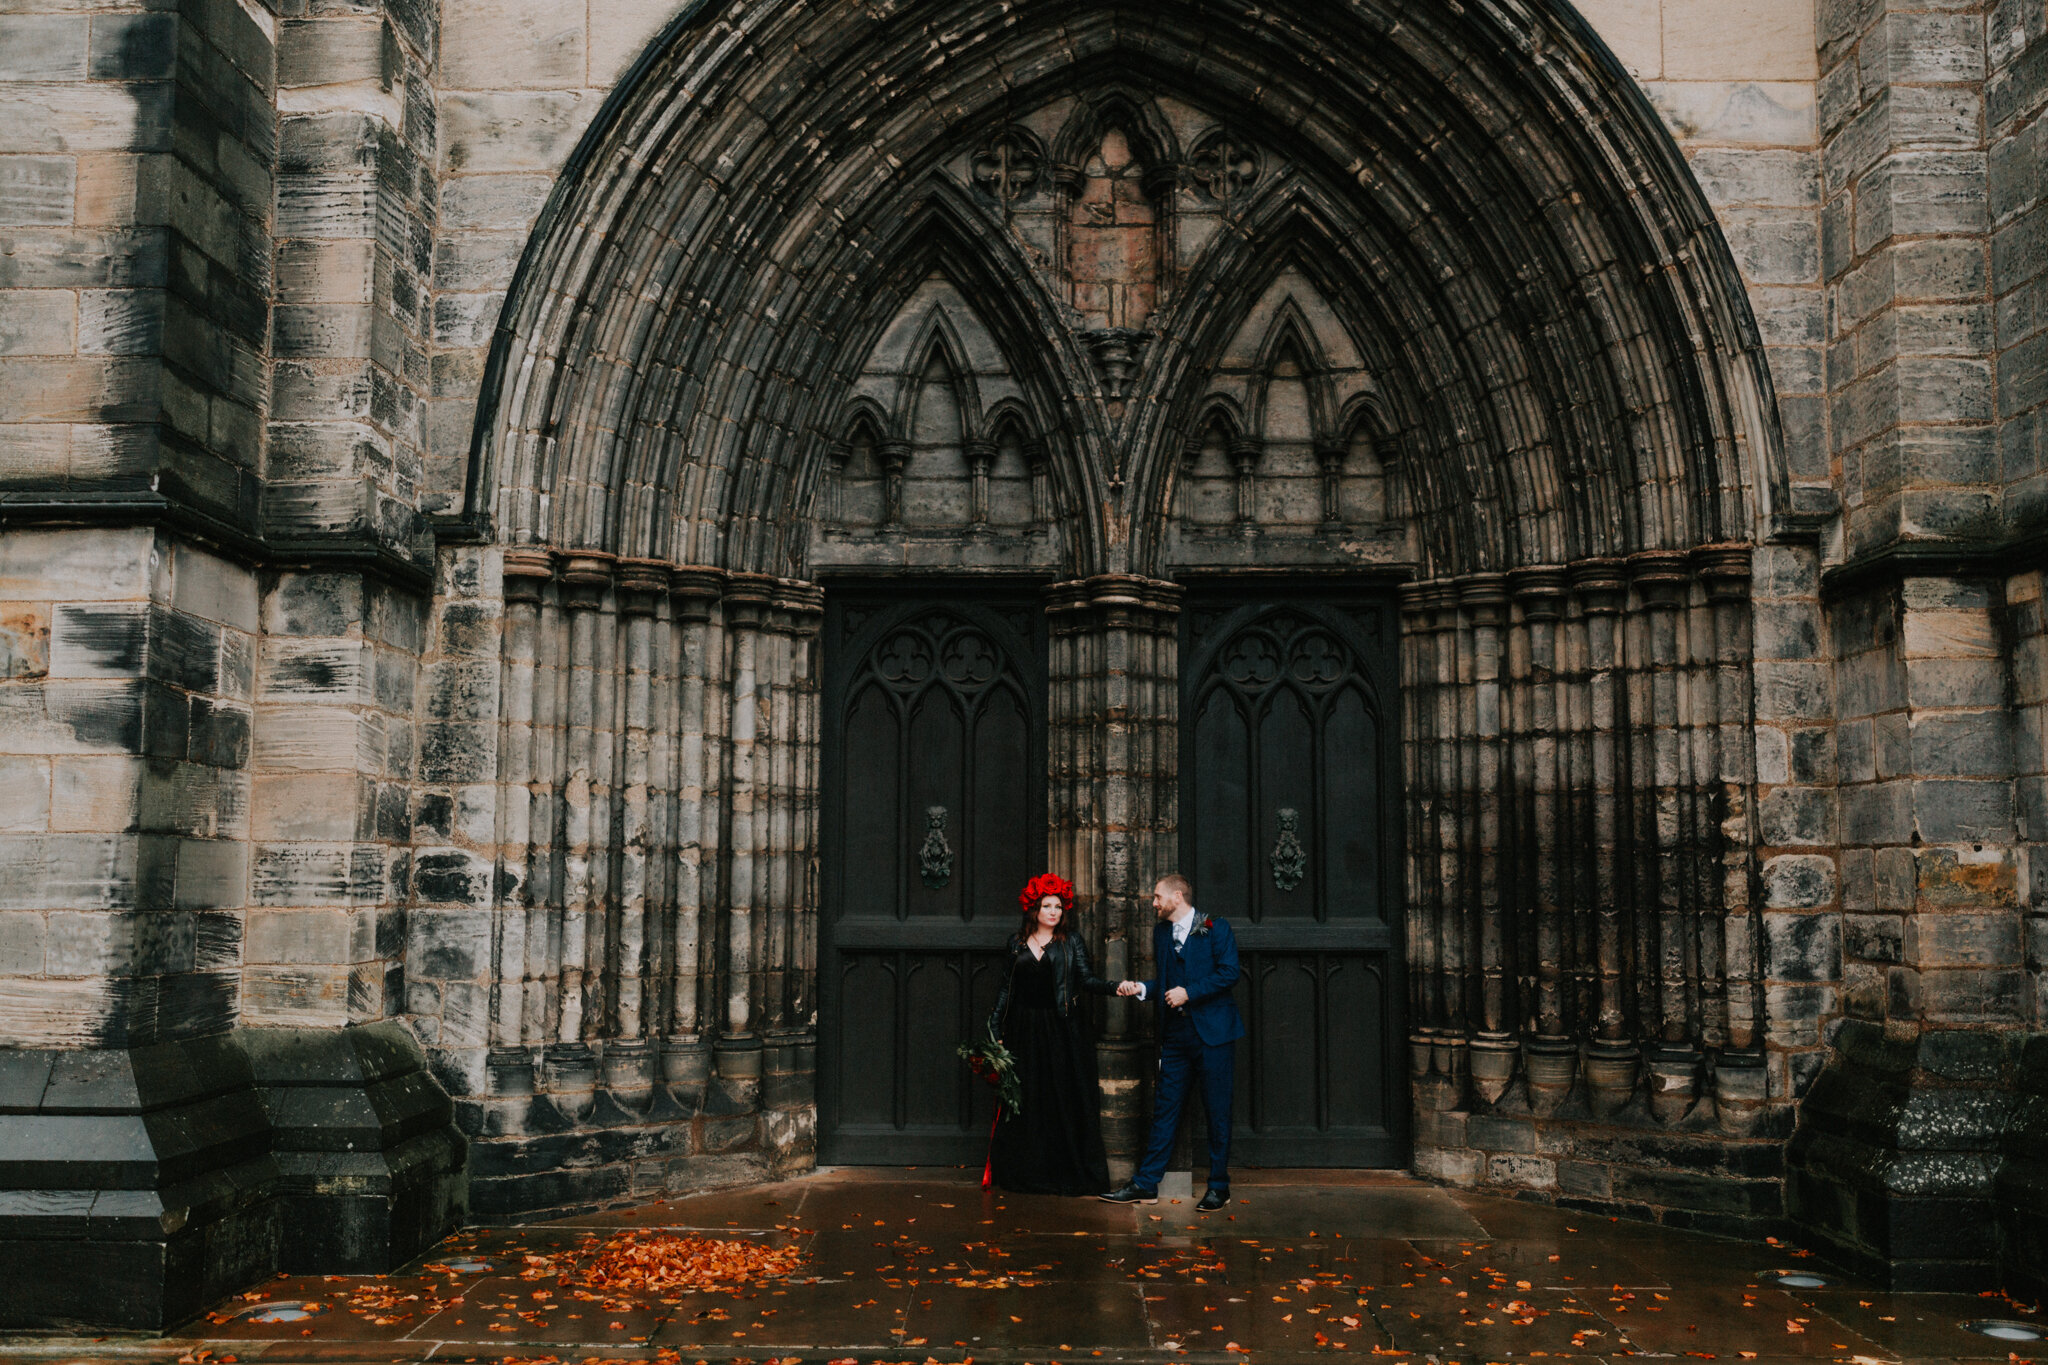 The couple is posing next to the Cathedral black doors